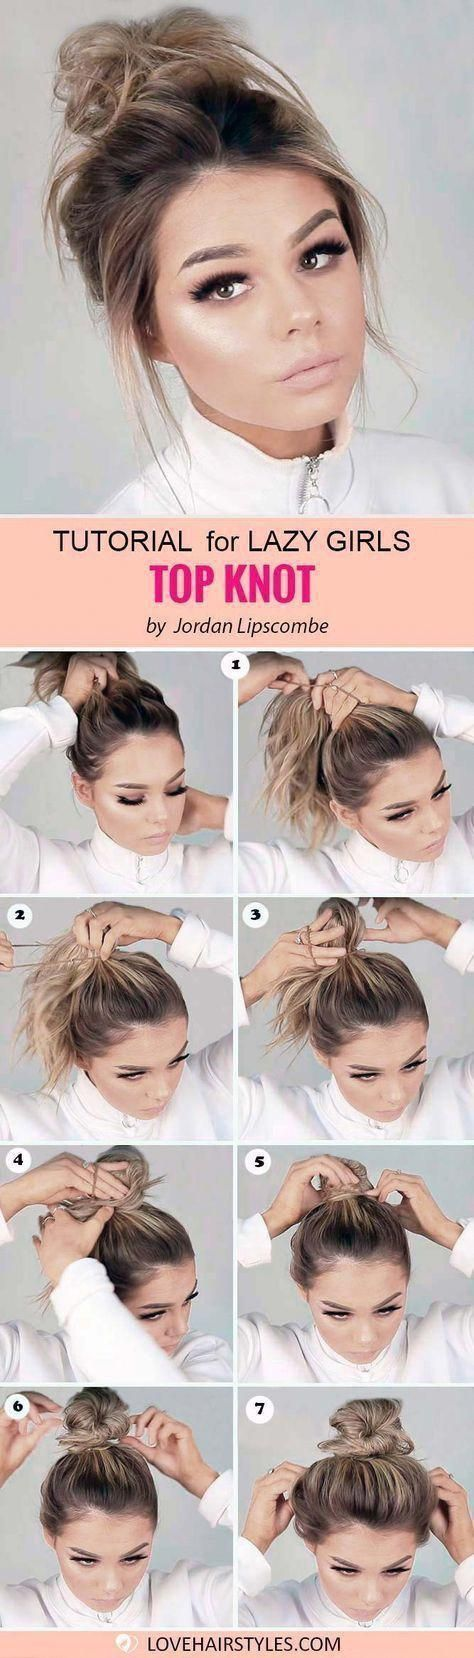 6 Cheap And Easy Tips Updos Hairstyle For Girls Everyday Hairstyles Updo Black Women Hairst Easy Hairstyles For Medium Hair Medium Hair Styles Easy Hairstyles